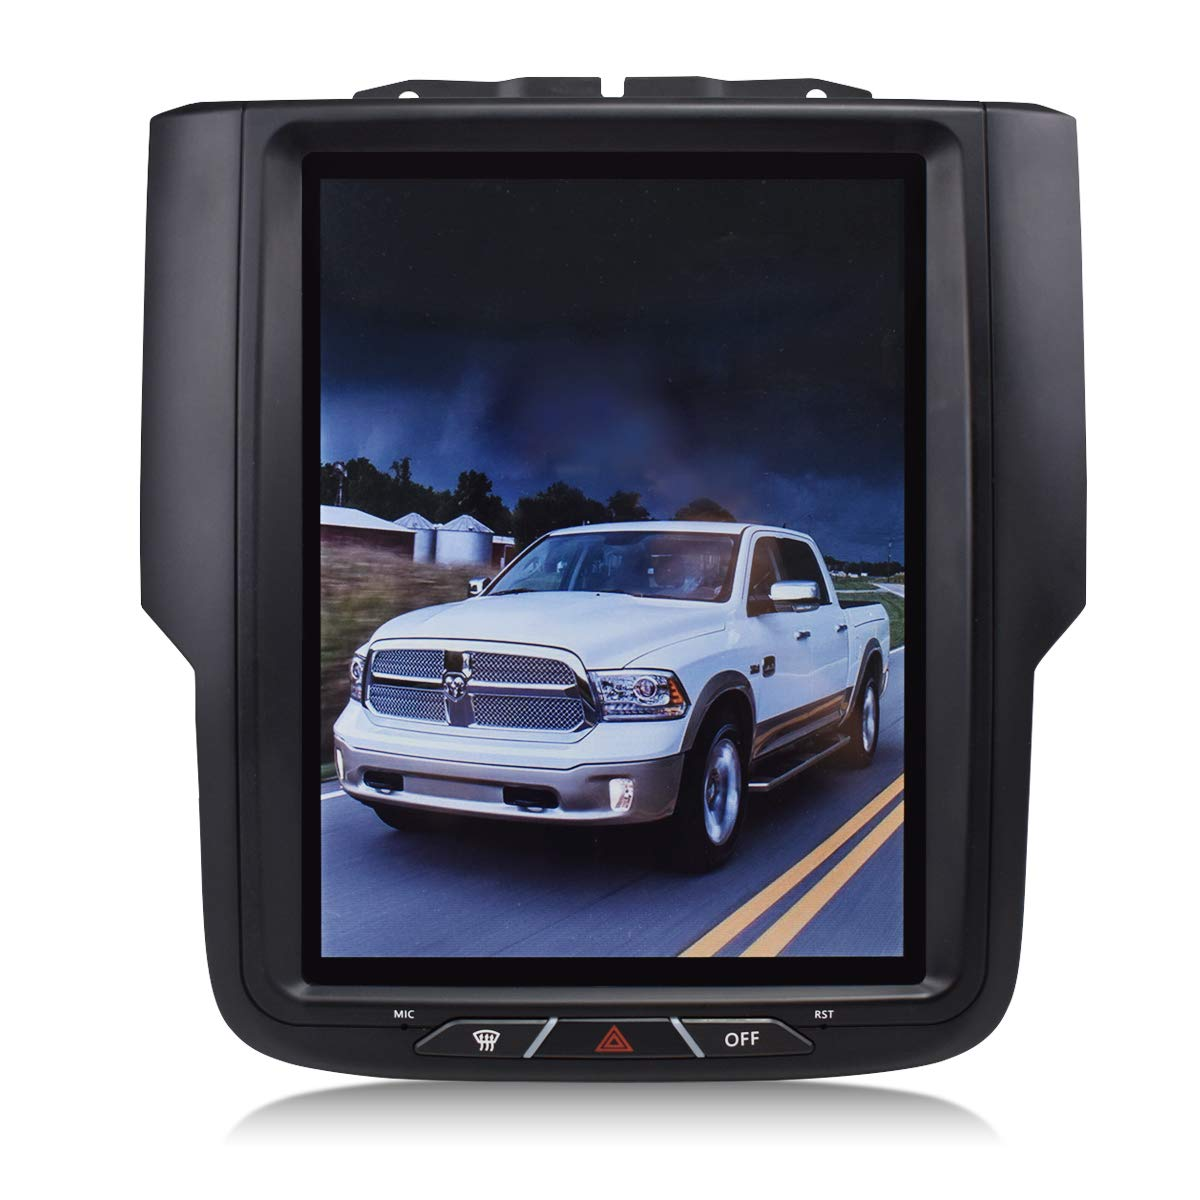 "Krando Android 7.1 10.4"" Vertical Screen car Audio Radio Multimedia System GPS Navigation for Dodge Ram 1500 2014-2018 KD-TV127"